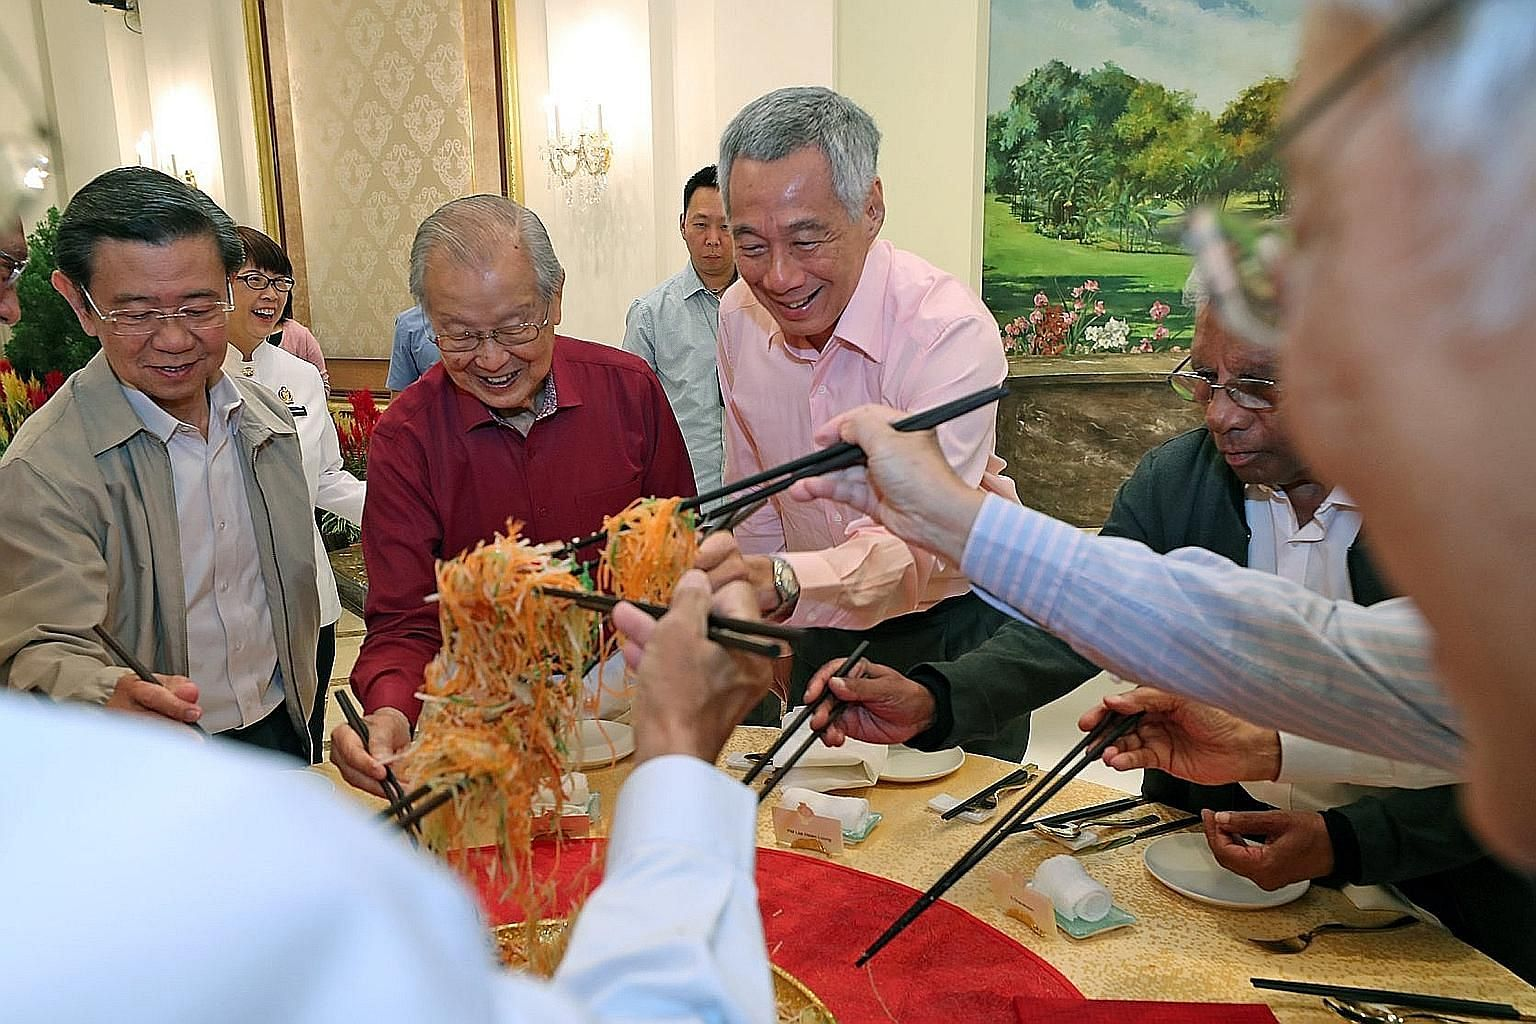 Prime Minister Lee Hsien Loong tossing yusheng with (from far left) former deputy prime minister Wong Kan Seng, first-generation leader Ong Pang Boon and former Cabinet minister S. Dhanabalan at the Istana on Tuesday. PM Lee was hosting several gener